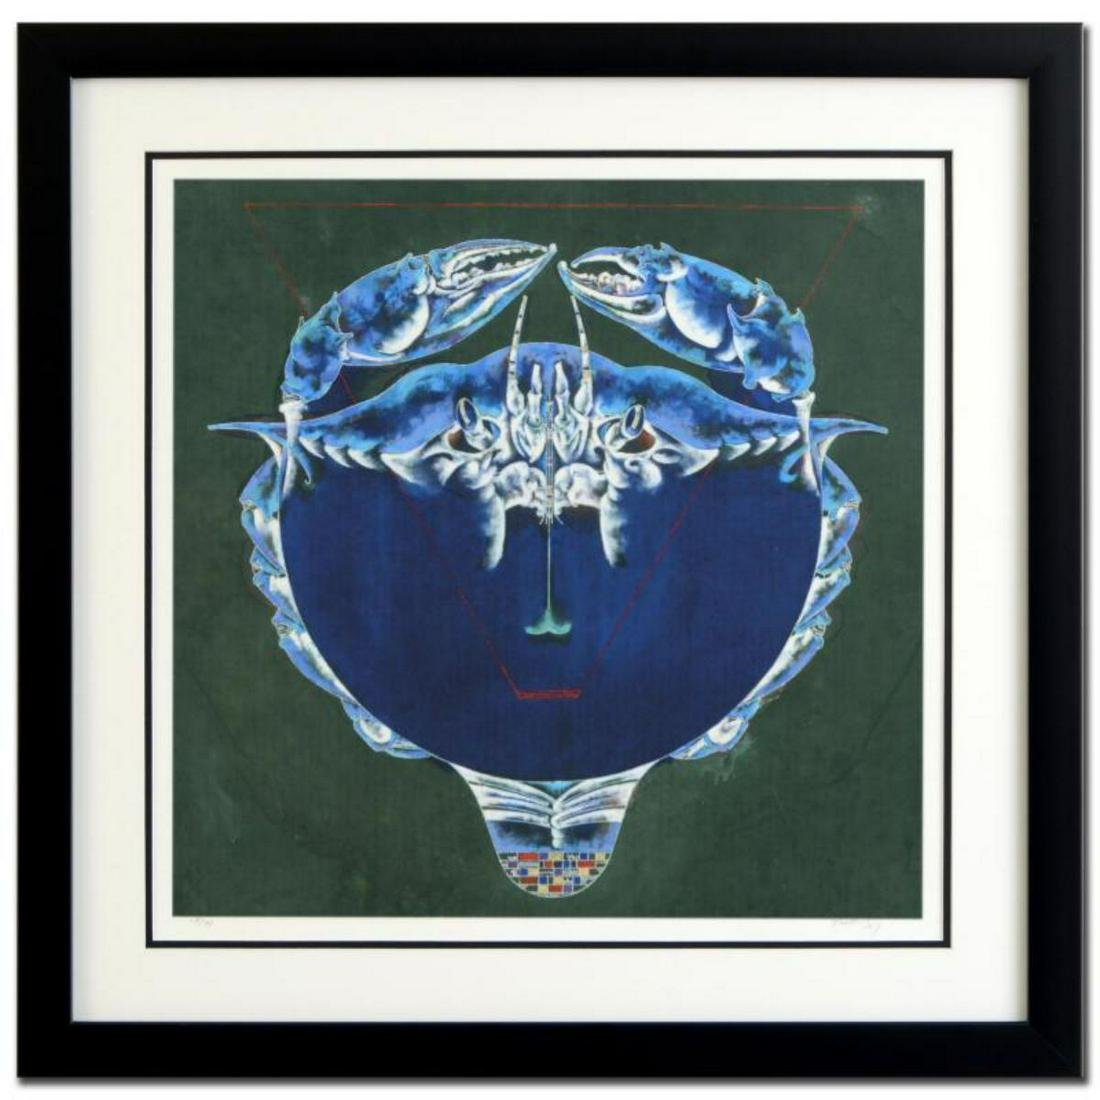 "Lu Hong, ""Cancer"" Framed Limited Edition Giclee,"